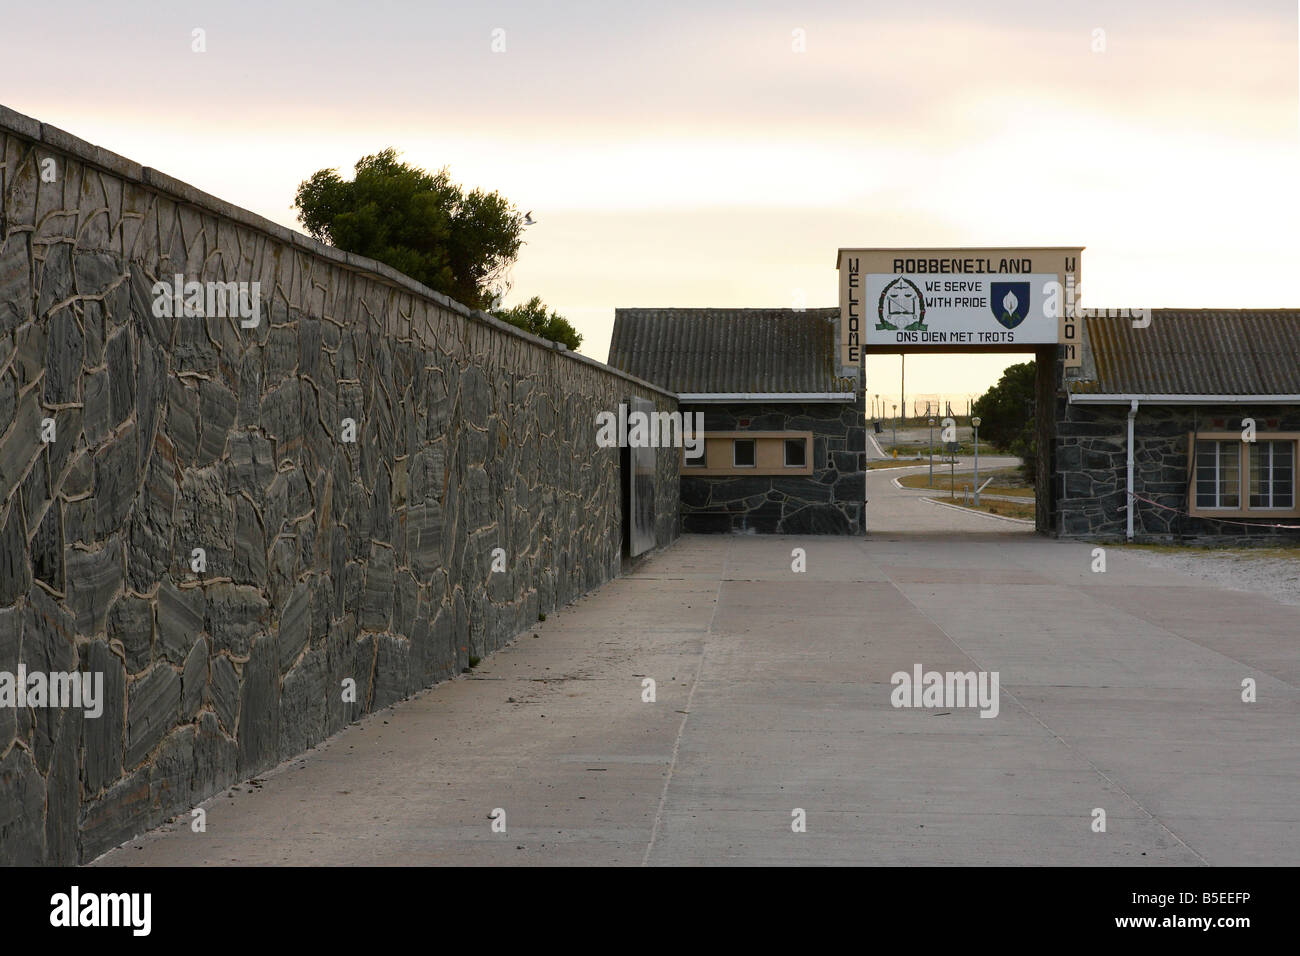 Robben island prison entrance gate cape town south africa